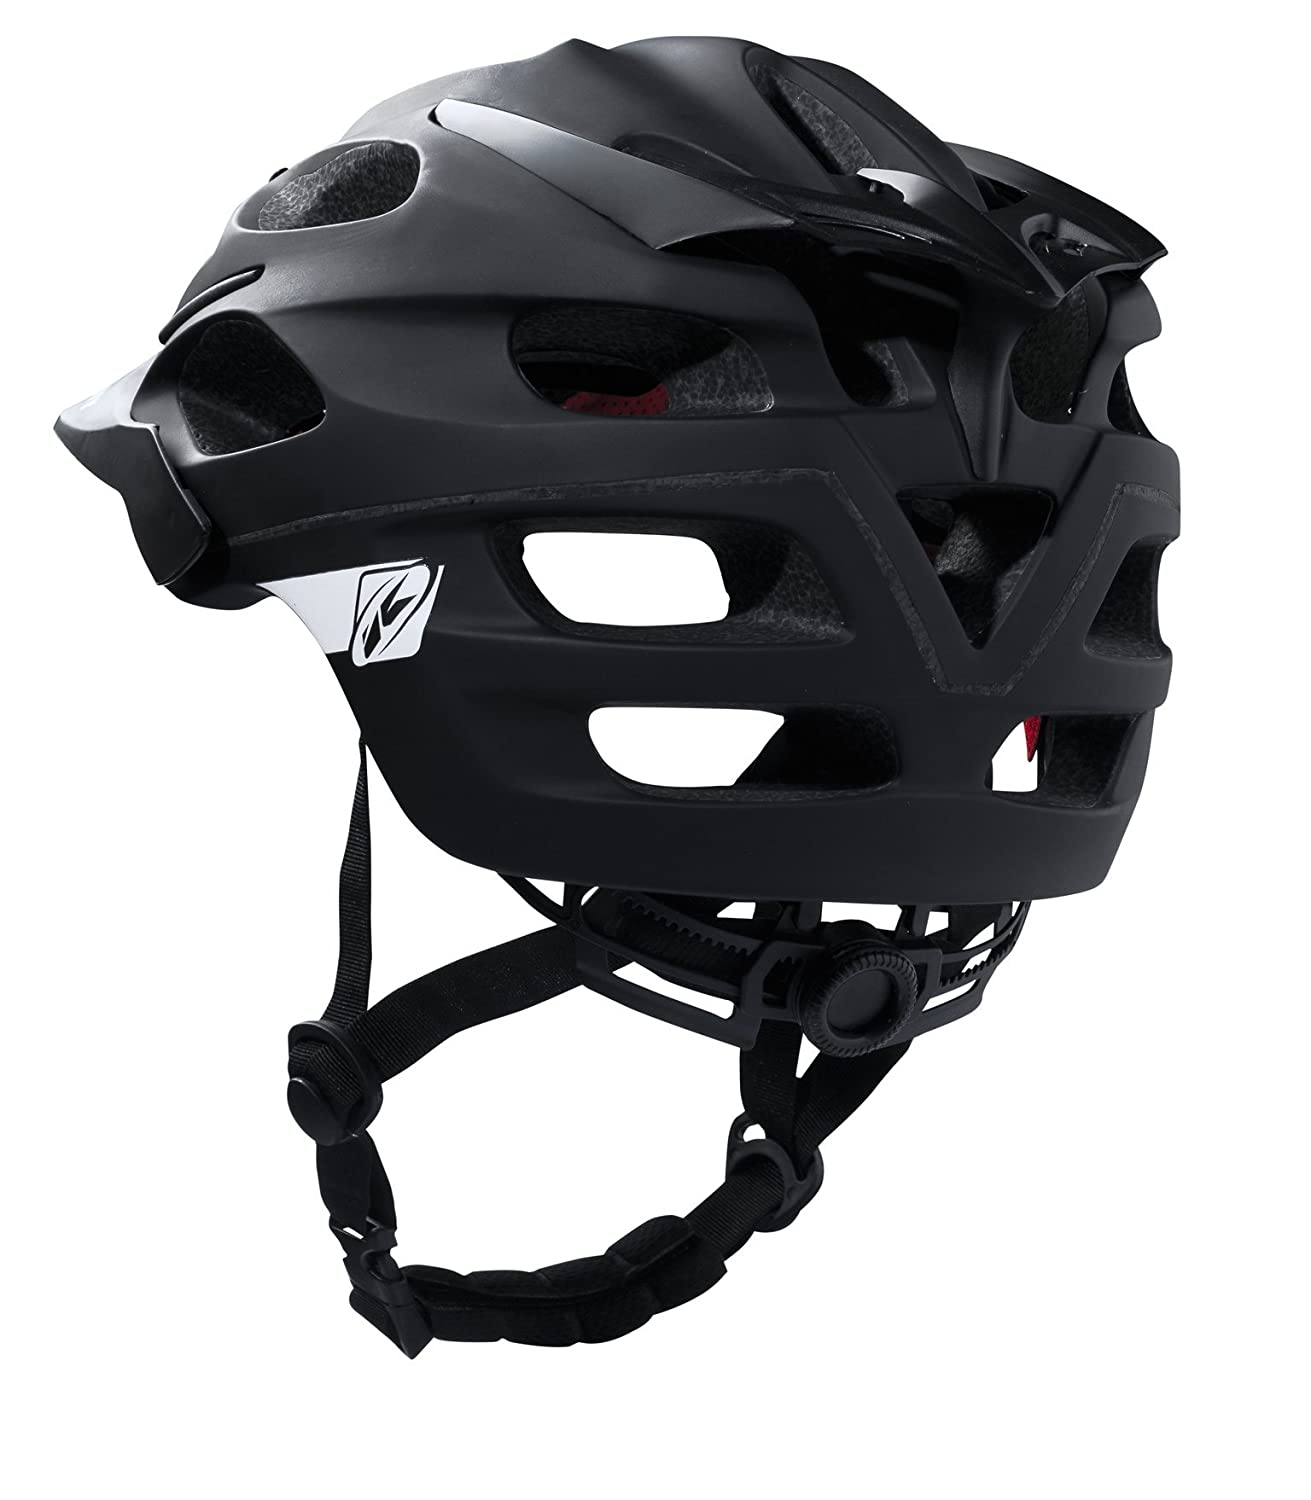 Kenny Enduro S2 Casco Mixto, Color Negro, tamaño L: Amazon.es: Deportes y aire libre